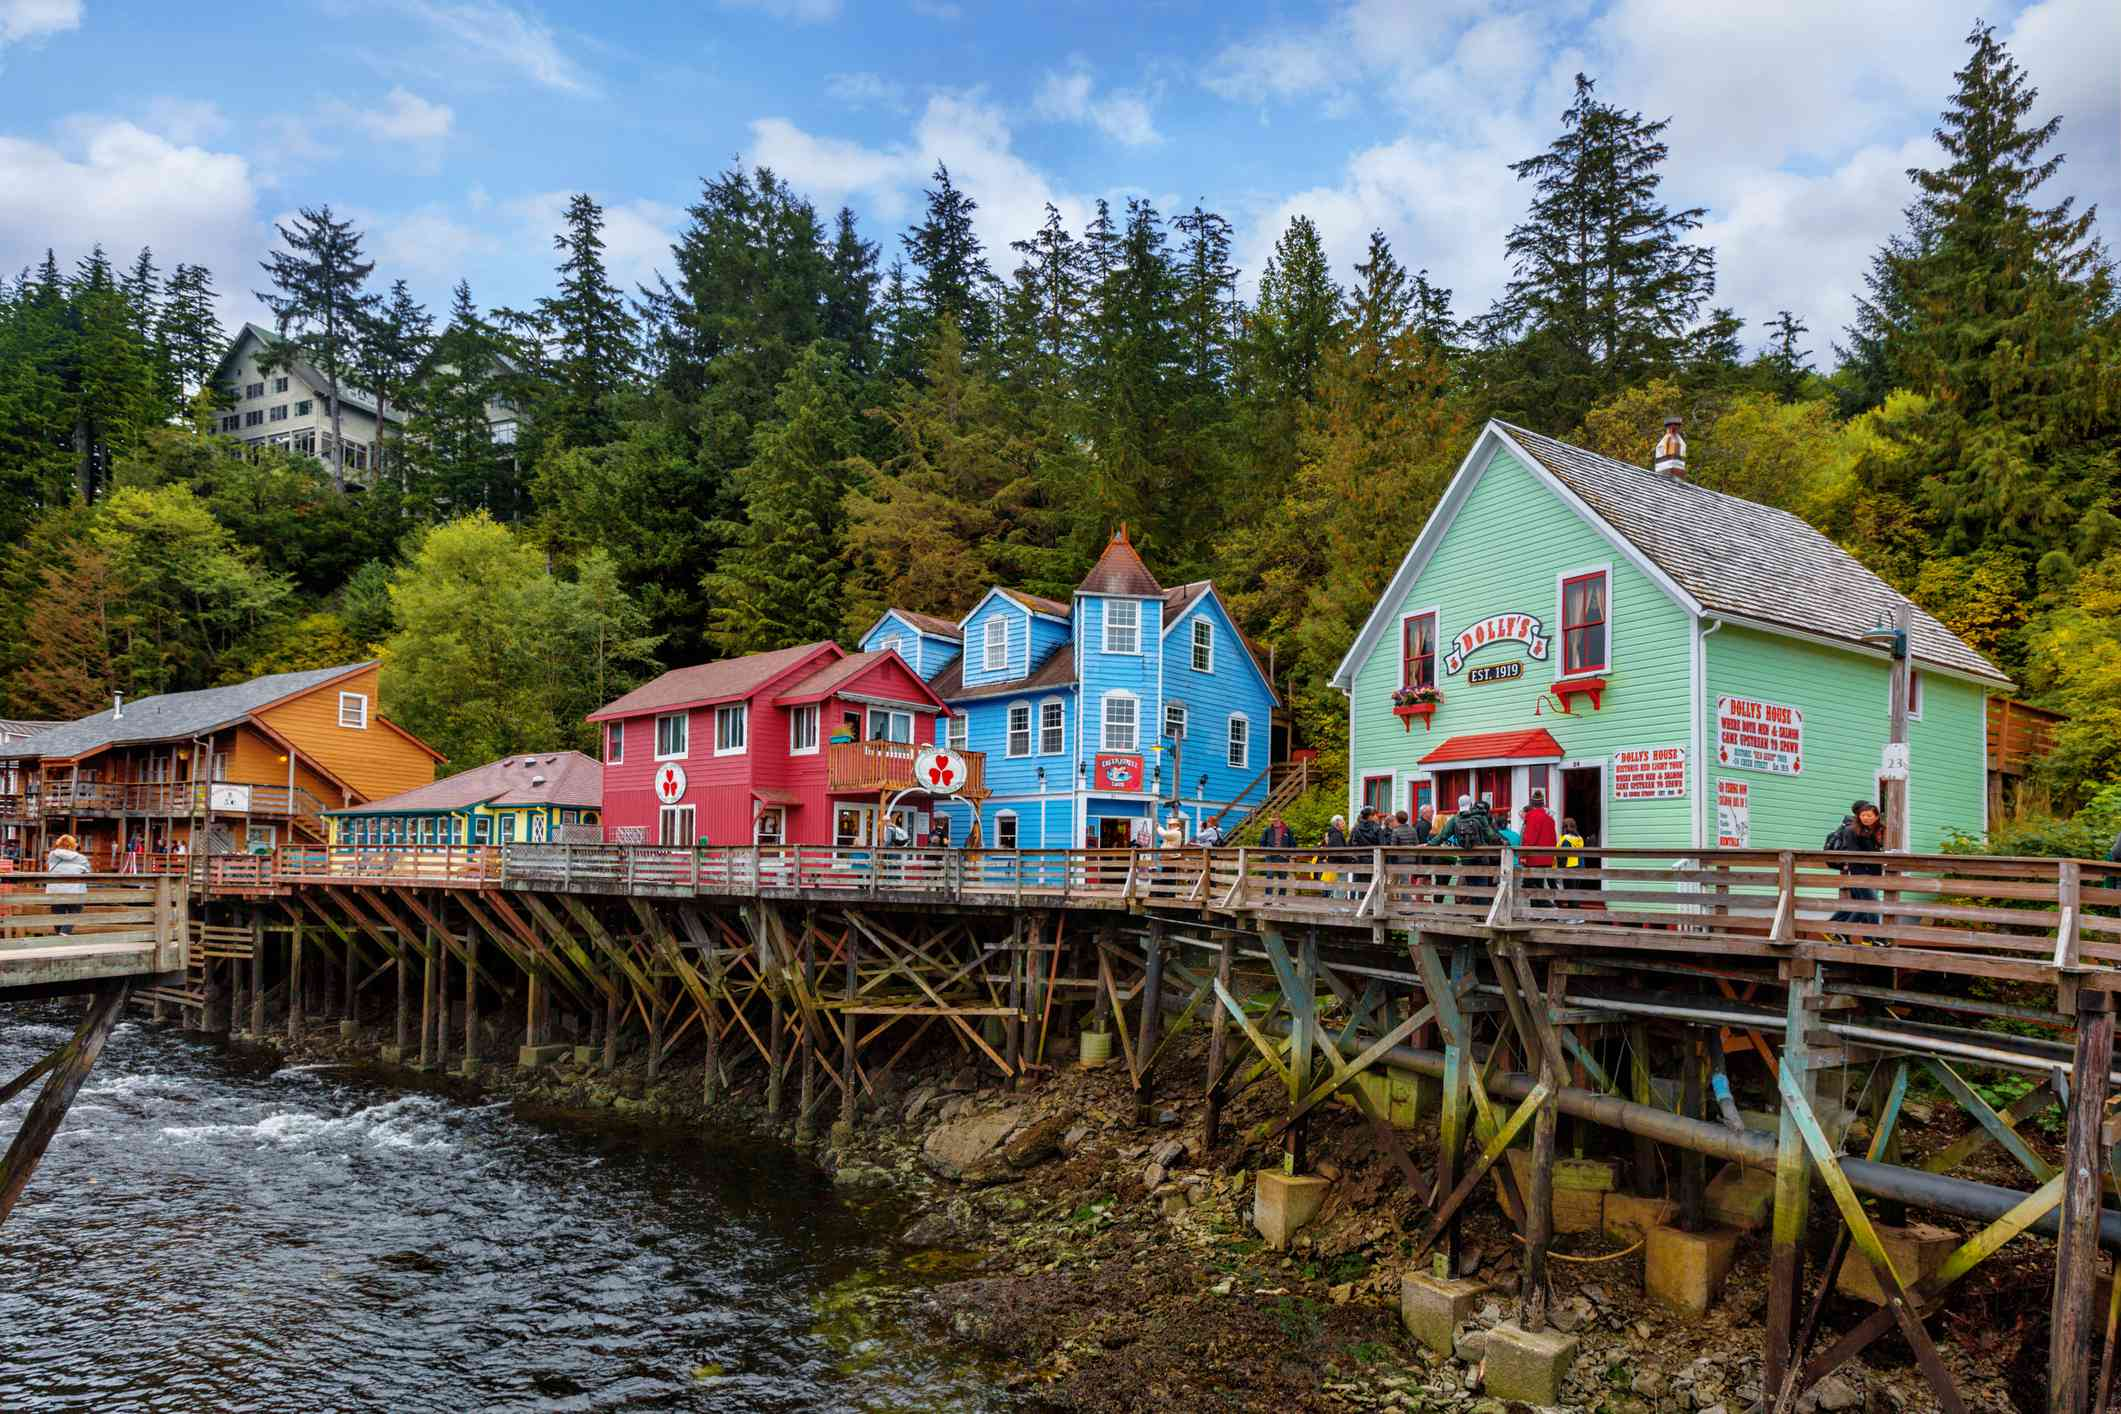 Small, colorful buildings on wooden stilts